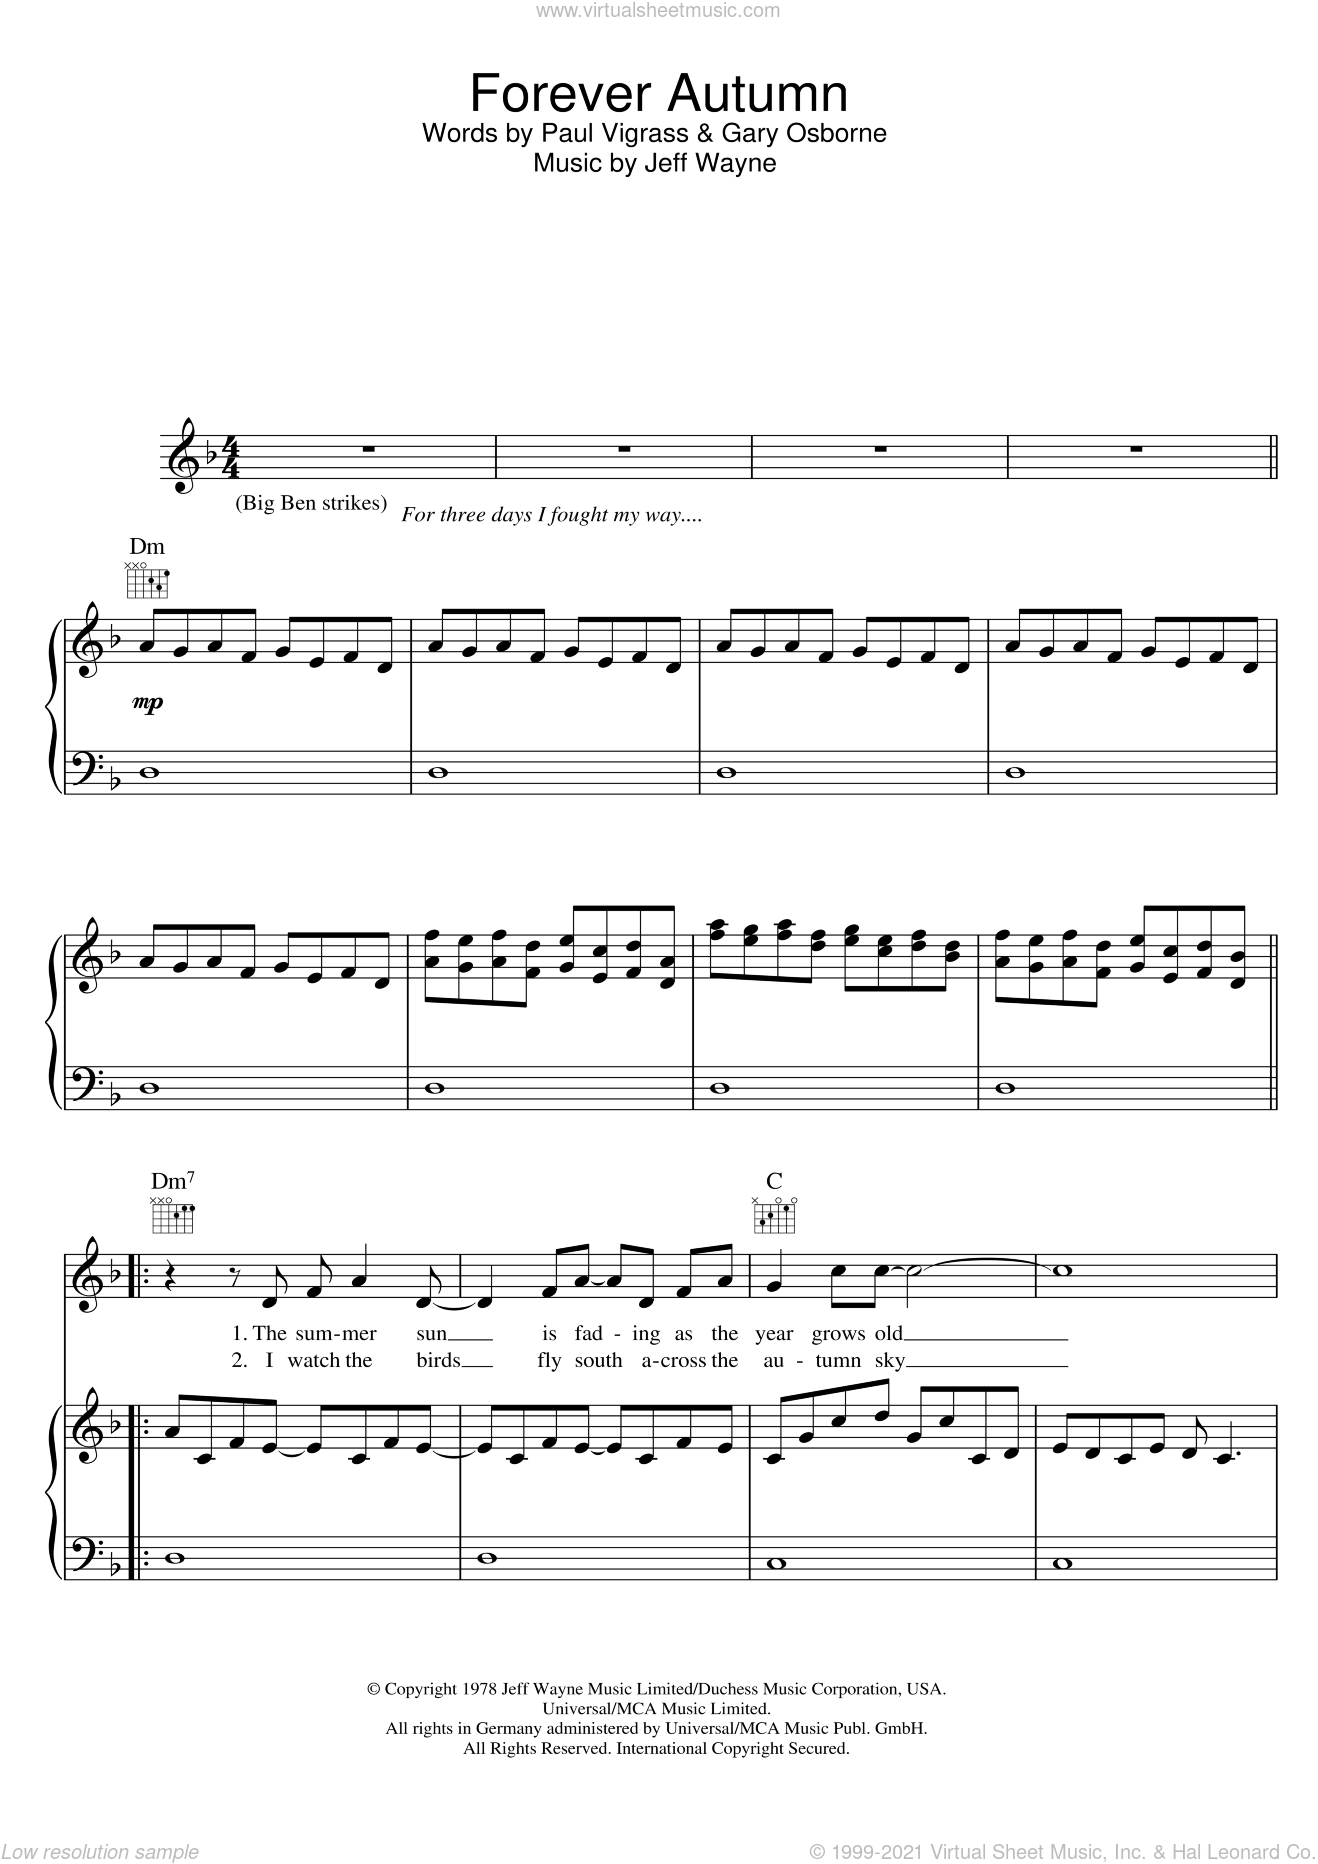 Forever Autumn (from War Of The Worlds) sheet music for voice, piano or guitar by Paul Vigrass